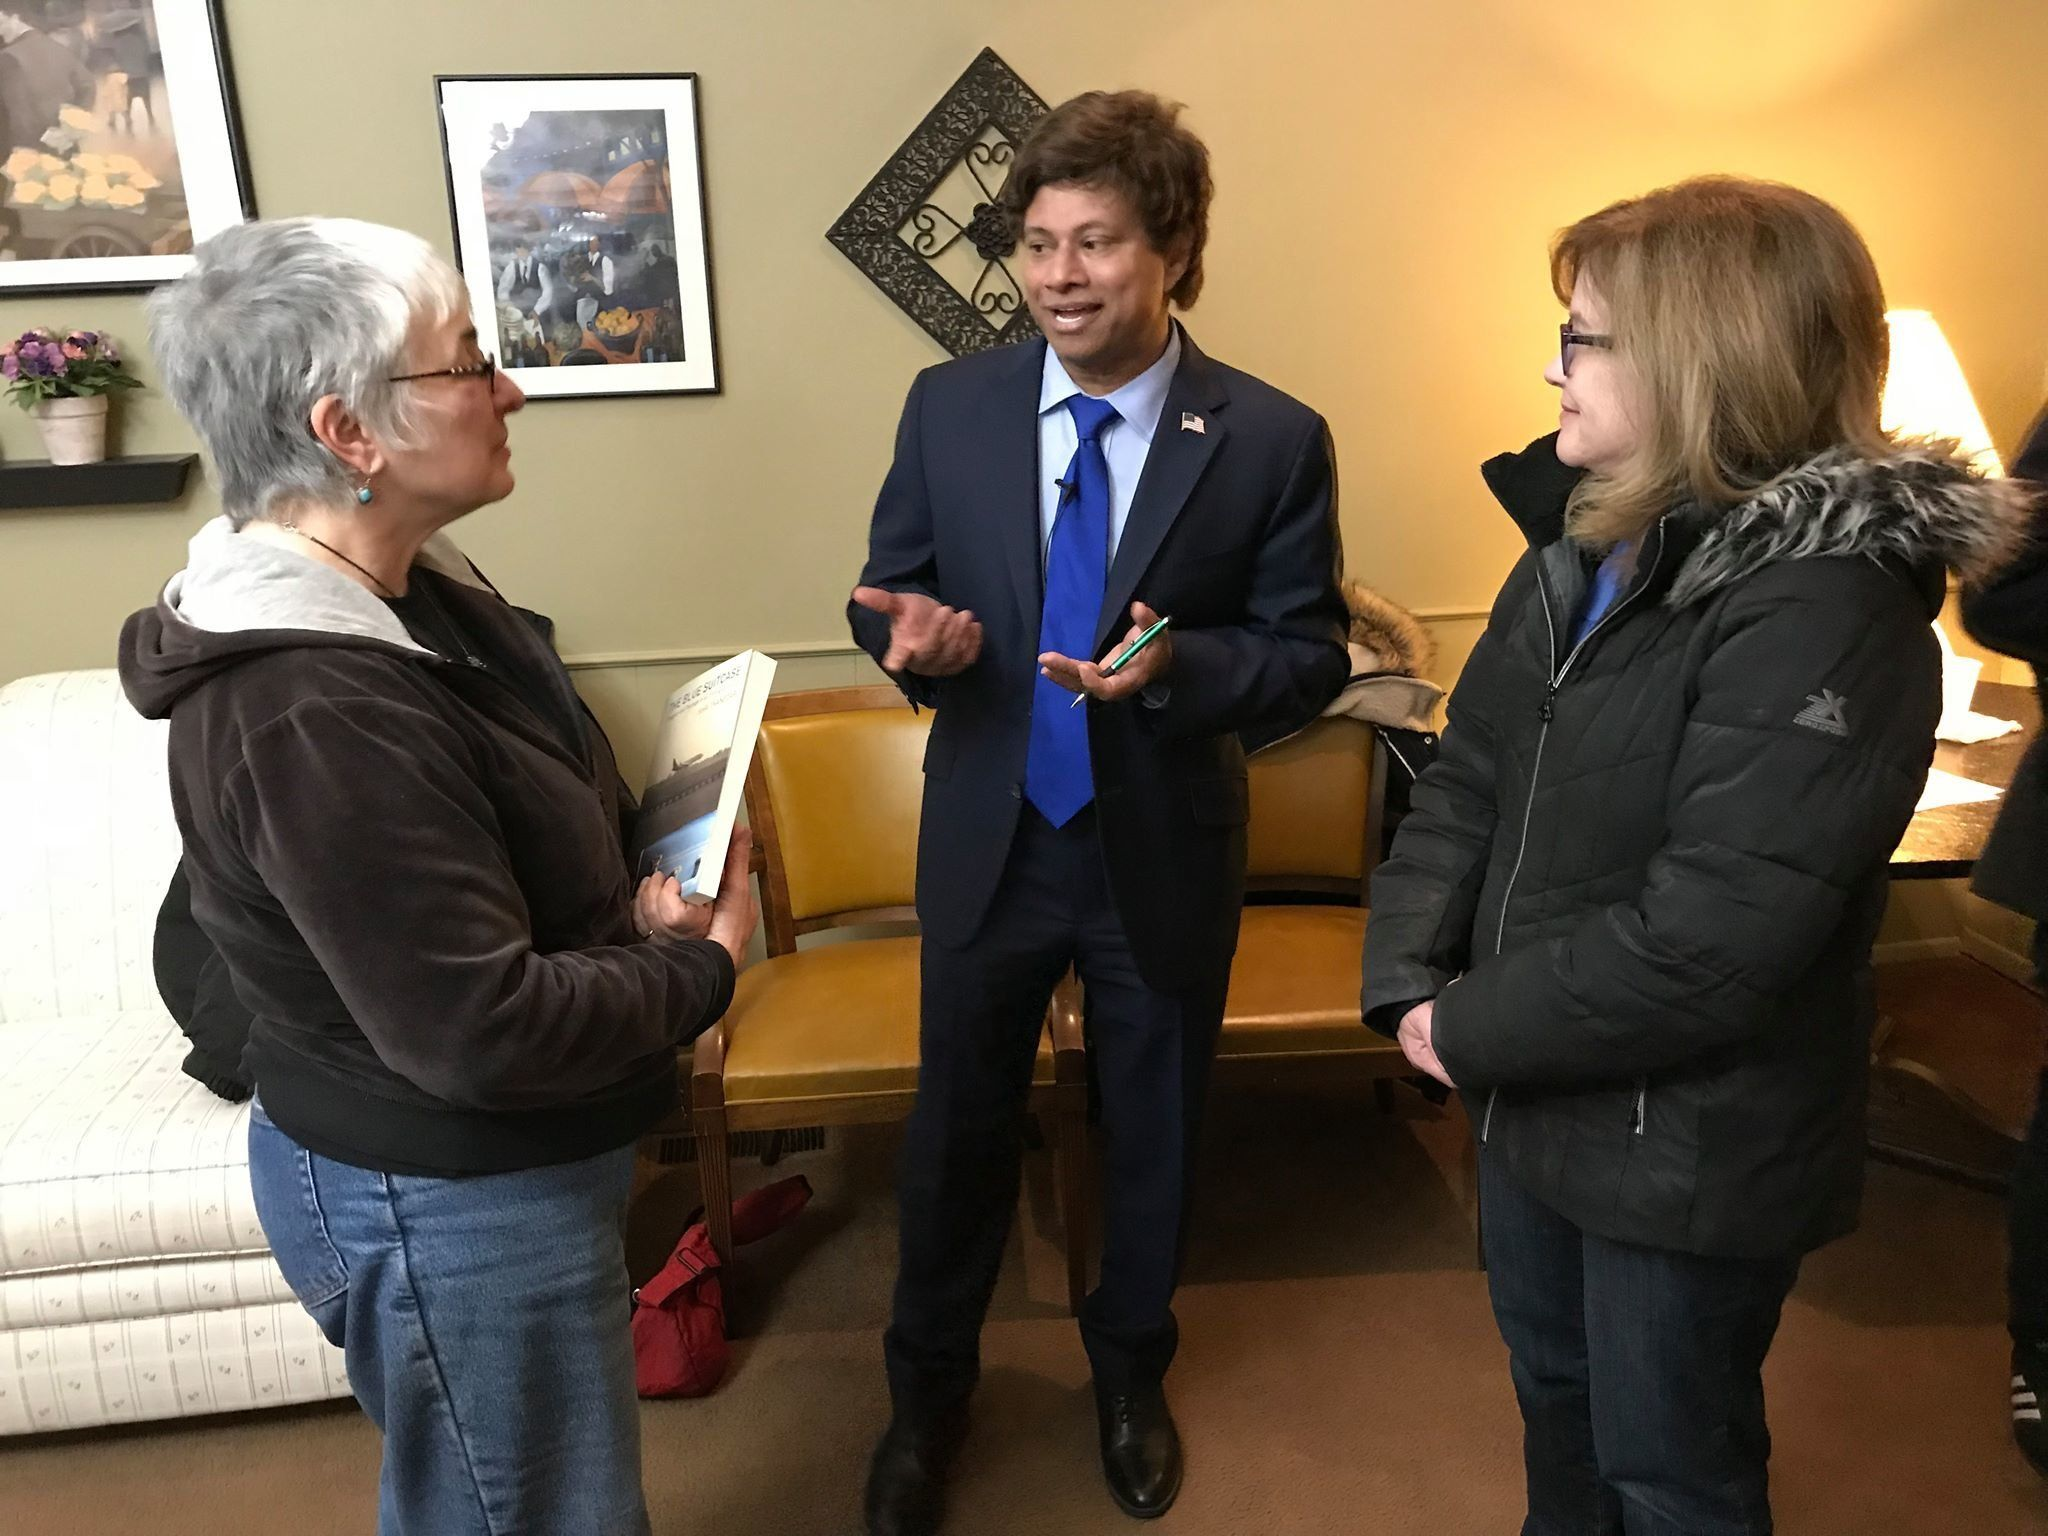 Democrat Shri Thanedar center speaks to voters Thanedar has elicited scrutiny for past business practices including the treatment of animals at a shuttered lab he owned